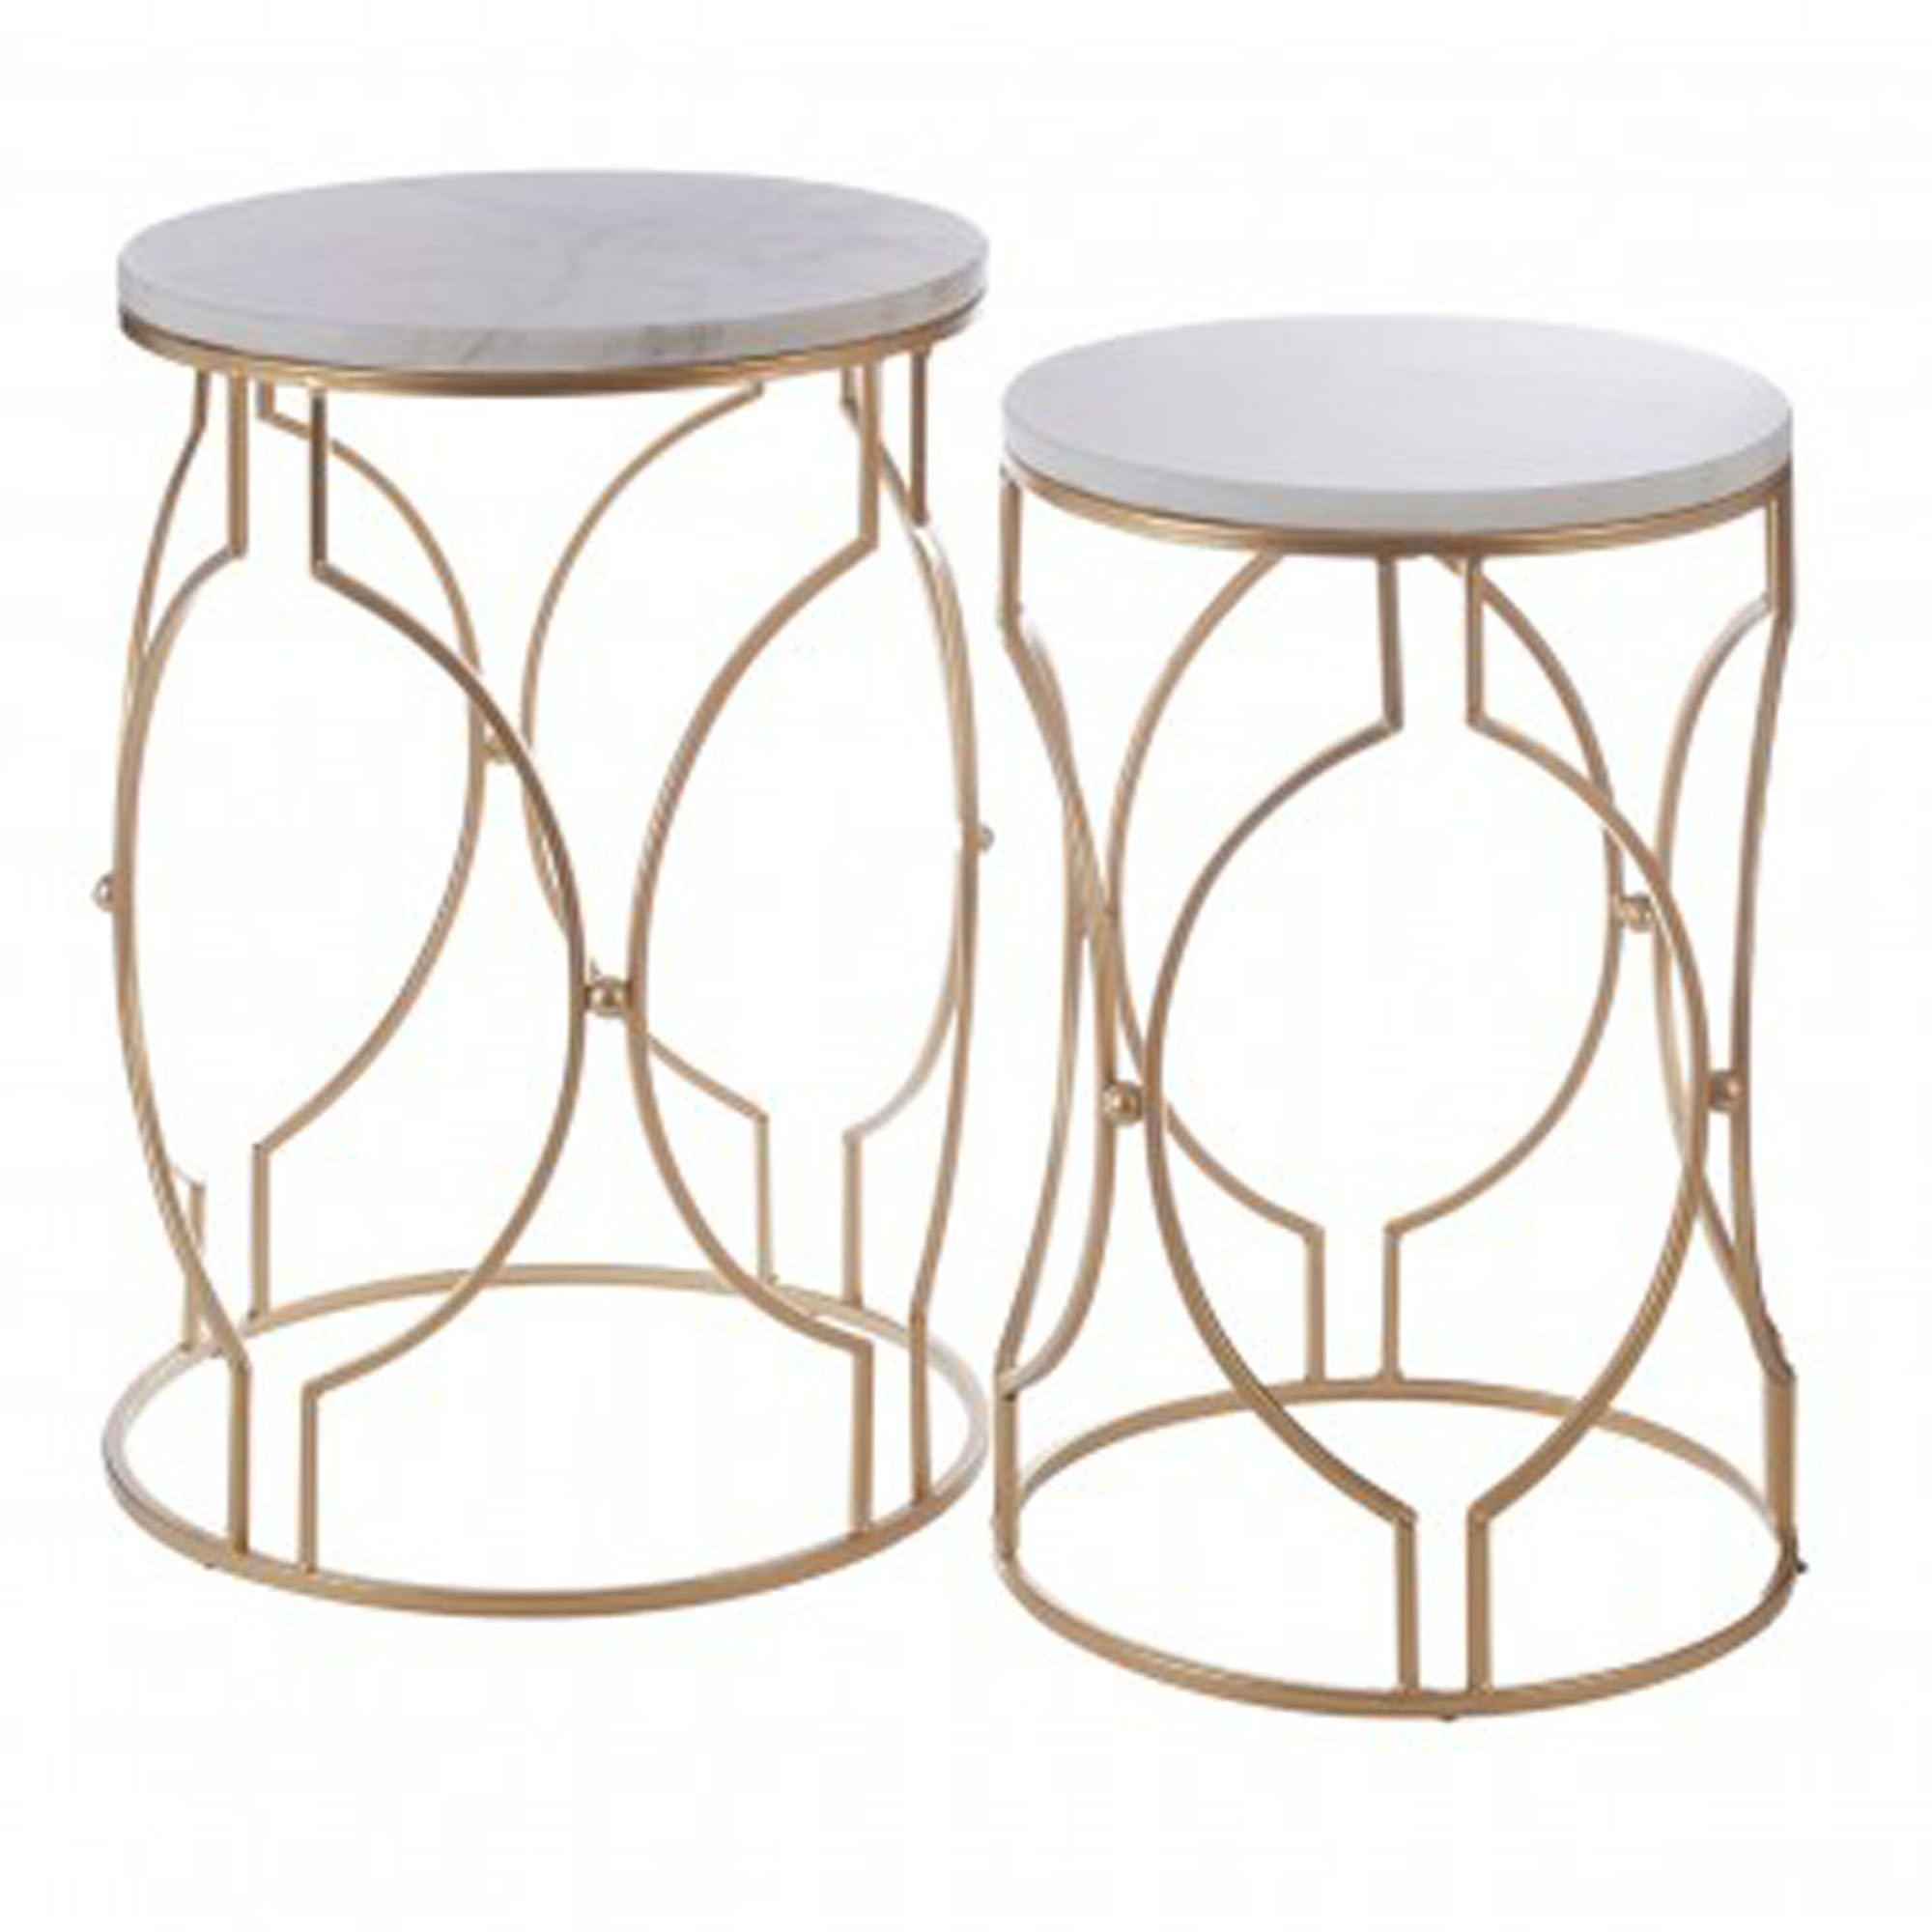 Arcana Set Of 2 Rounded Marble Side Tables Side Tables Marble Table